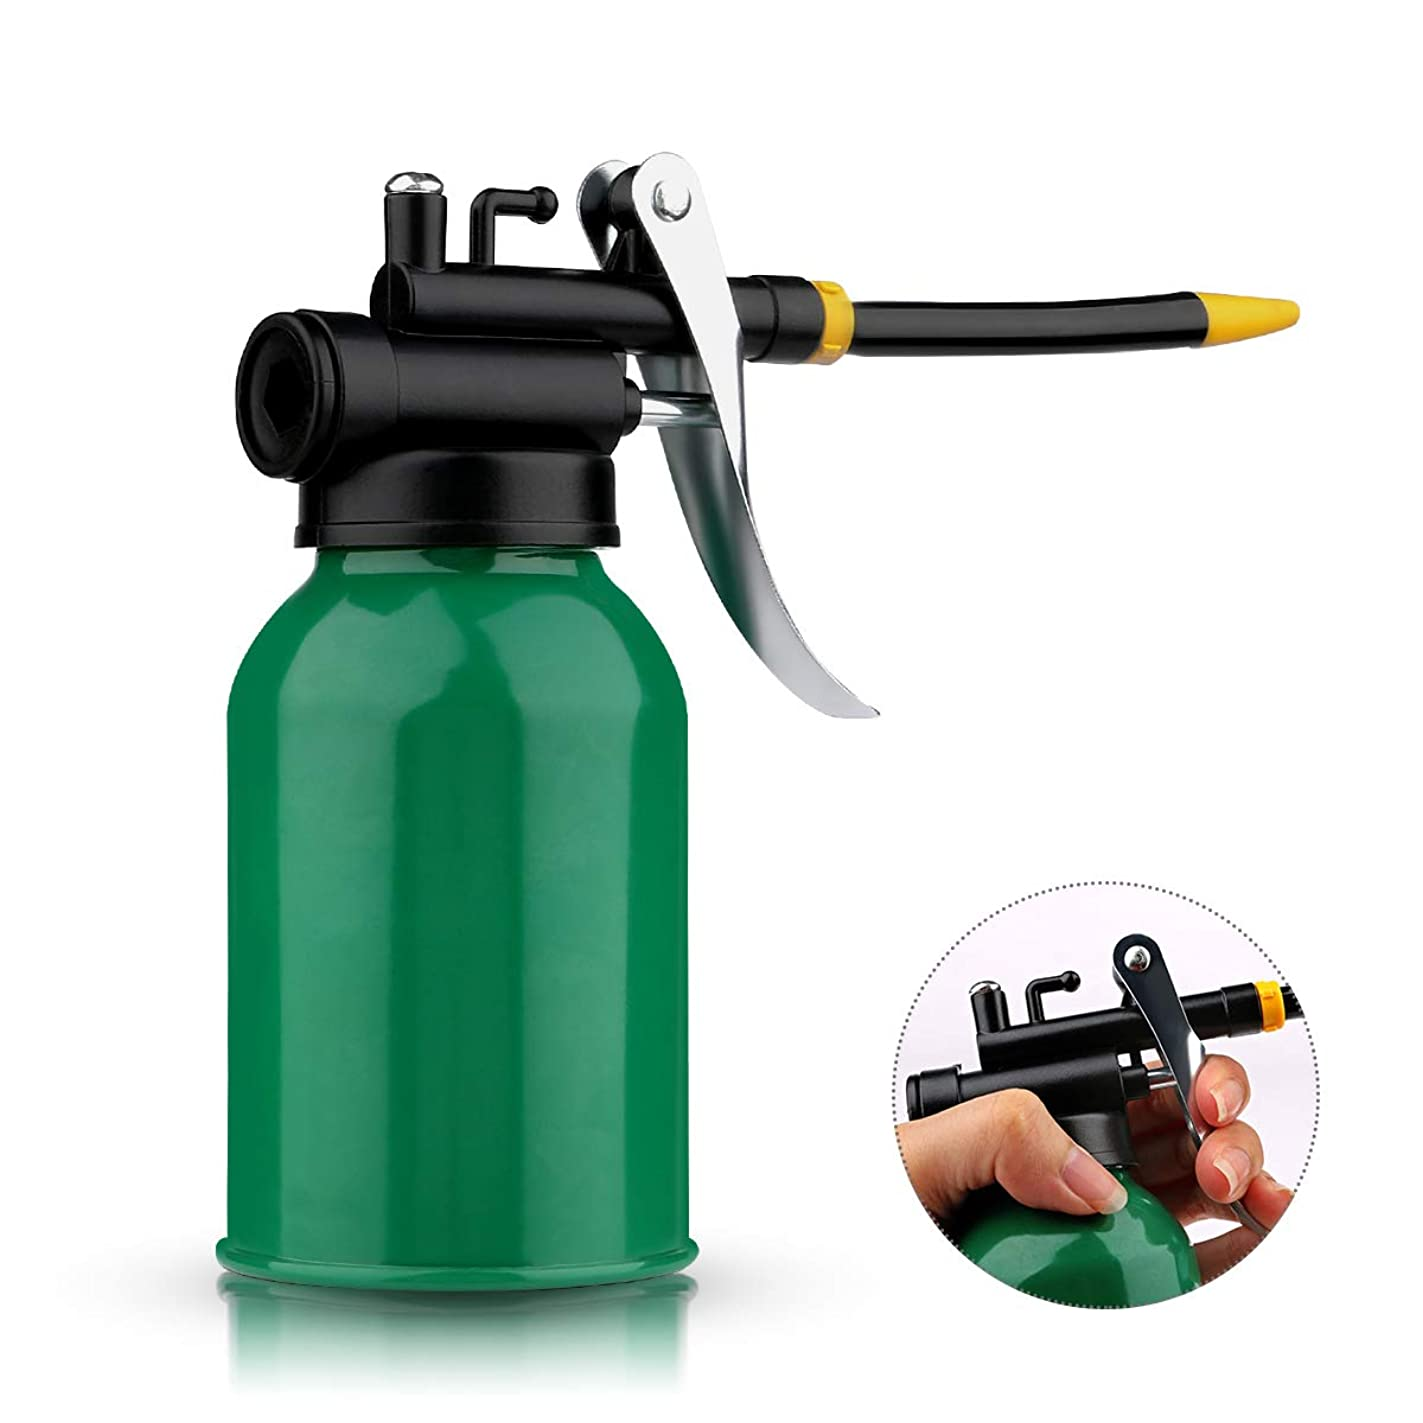 Oil Pump Can, Yebeauty Green Metal Pump Oiler Can, High Pressure Pump Oiler with Flexible Spout for Heavy Duty Fixing Cleaning and Lubricants Grease